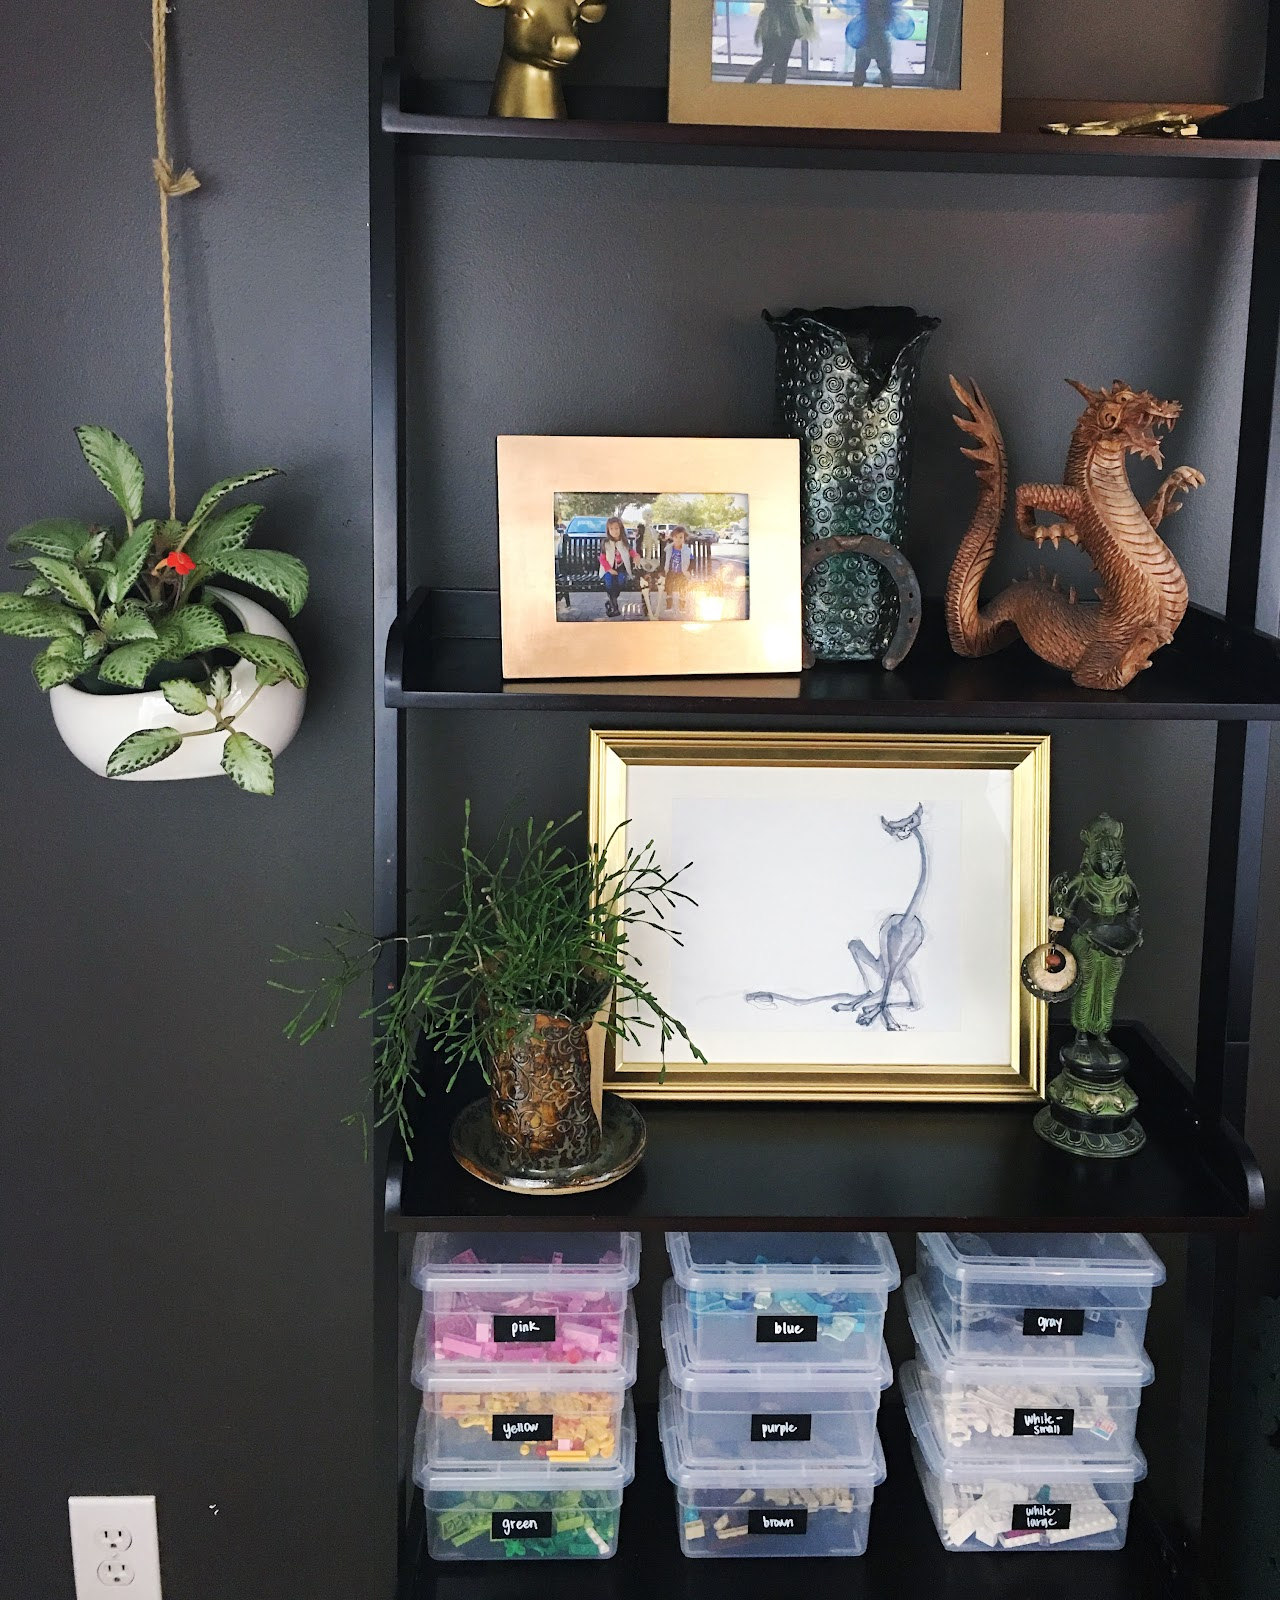 What tips do you have for staying organized once the initial organization is plete